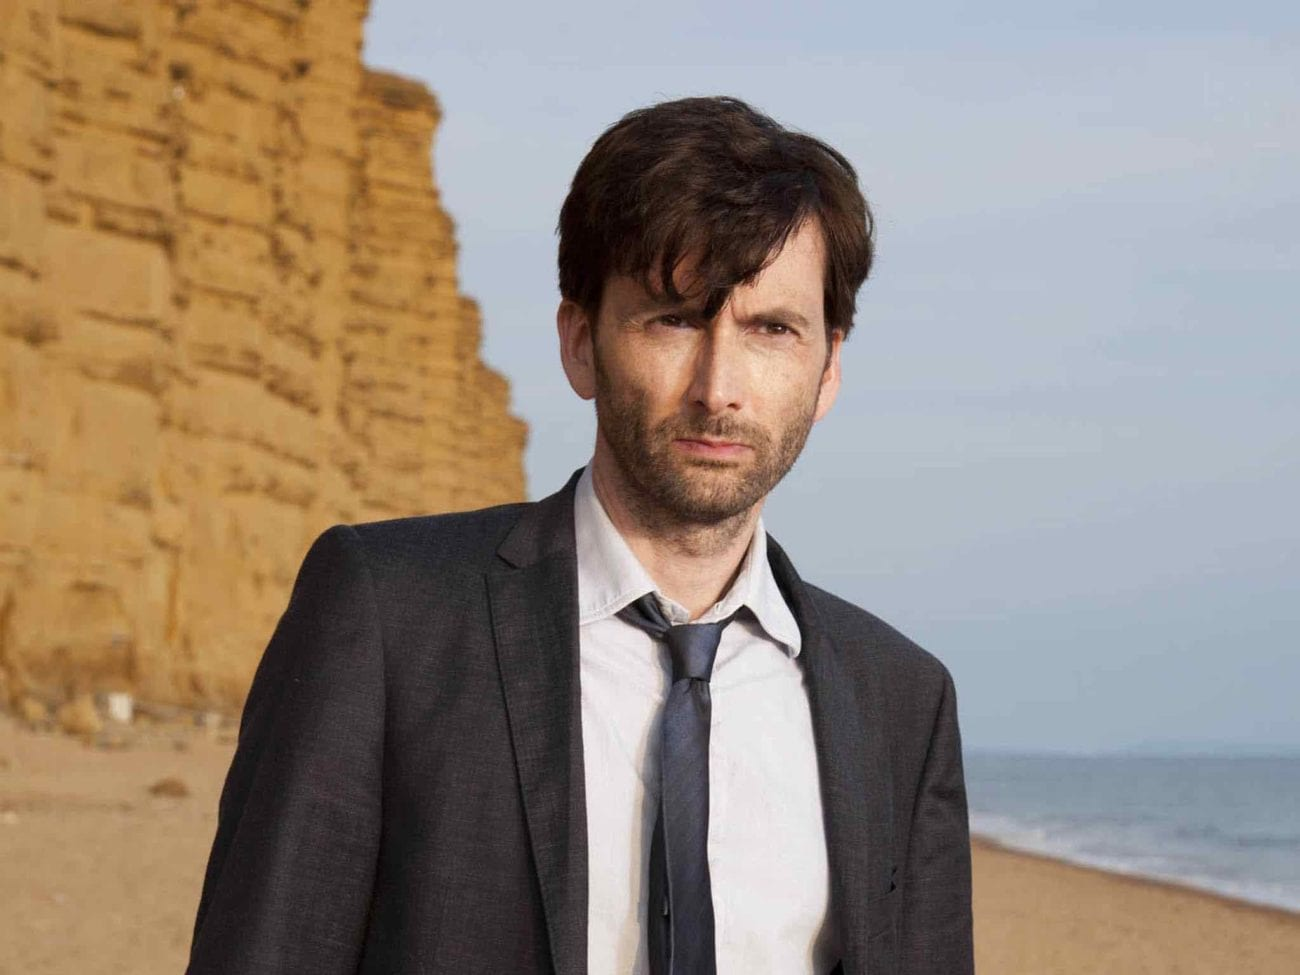 Netflix announced new international crime thriller series 'Criminal' starring David Tennant, so we did our best detective work about what to expect.